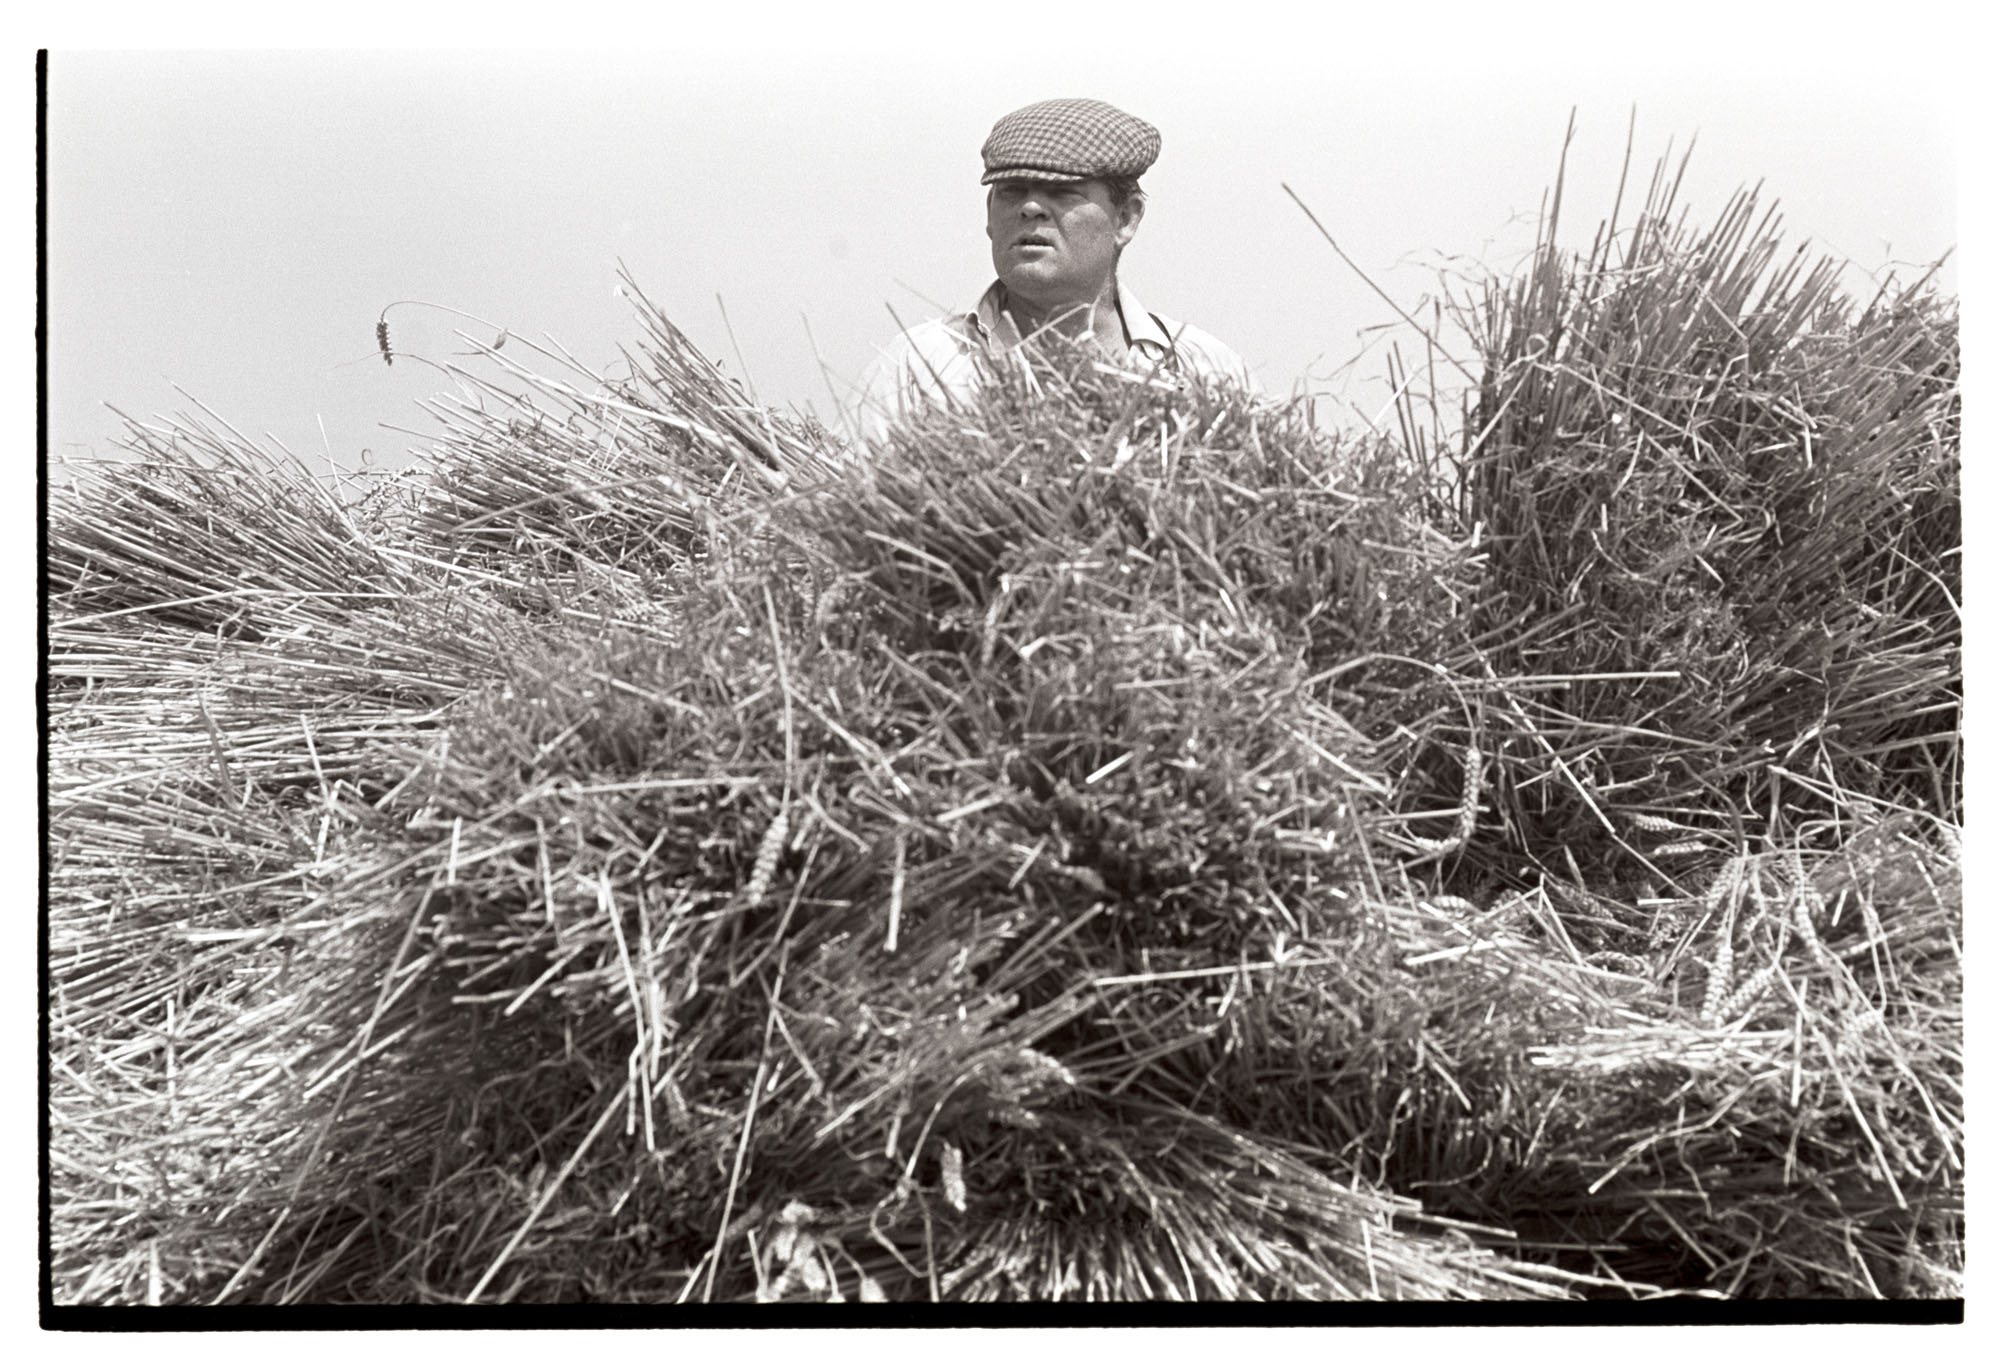 Farmer on load wheat.<br /> [Mr Lake, wearing a flat cap, stood on top of bundles of wheat, probably on a trailer, at Kiverleigh, Beaford.]